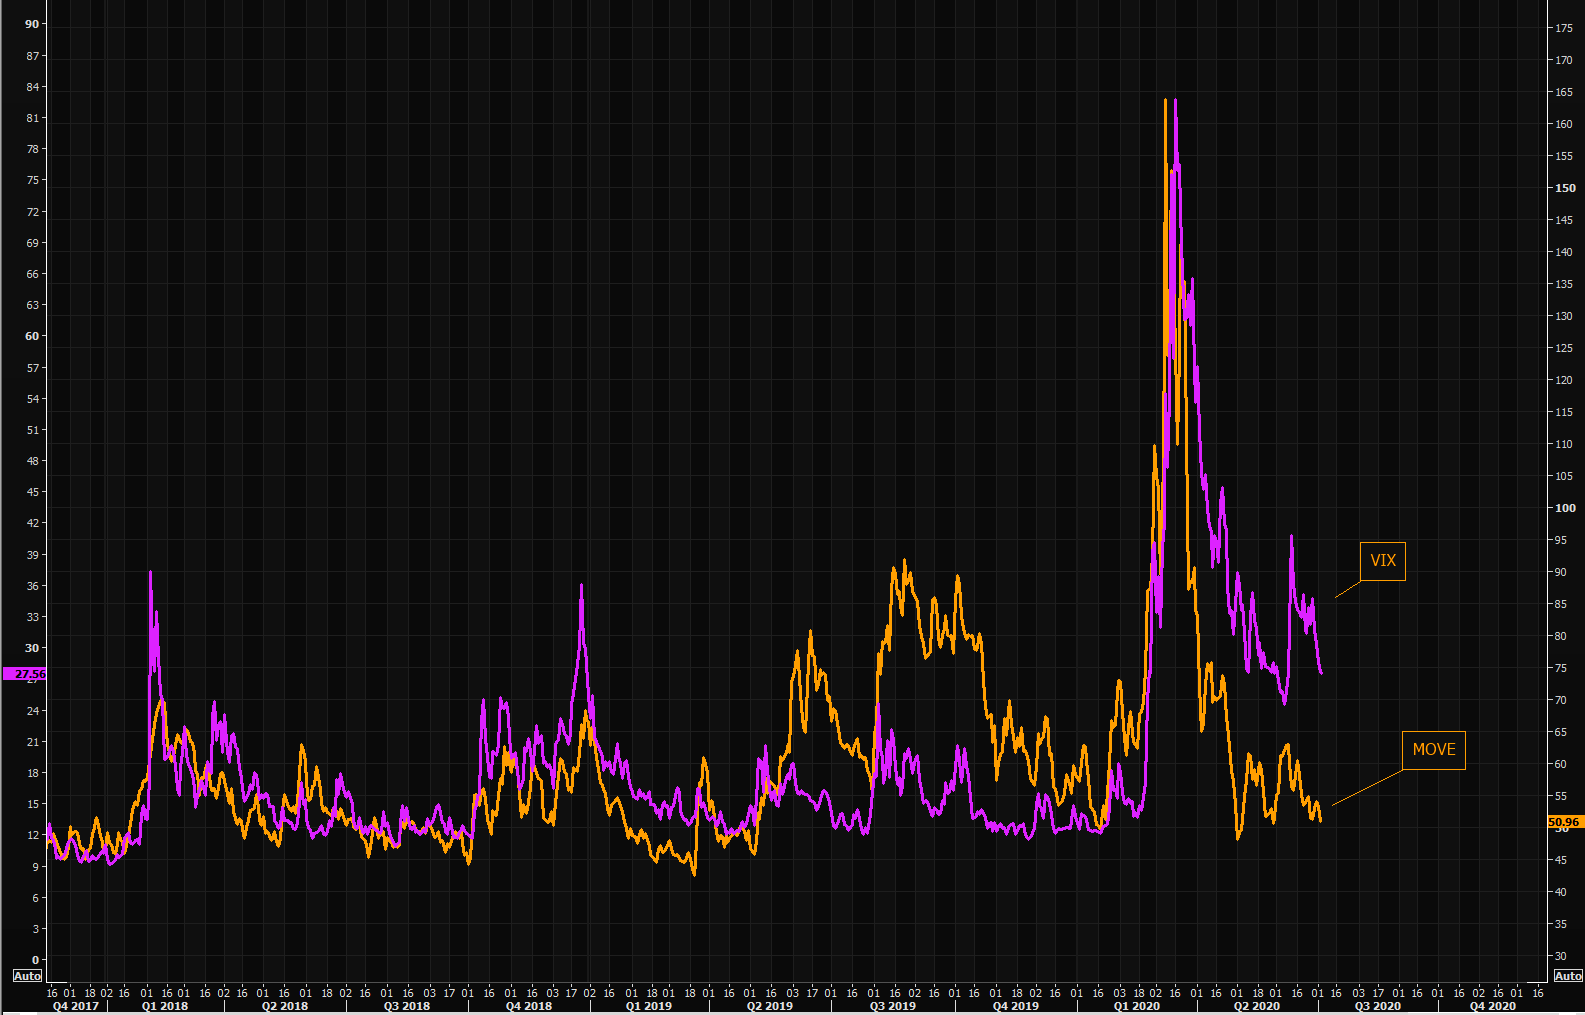 "MOVE moving lower - will VIX catch up ""violently"""